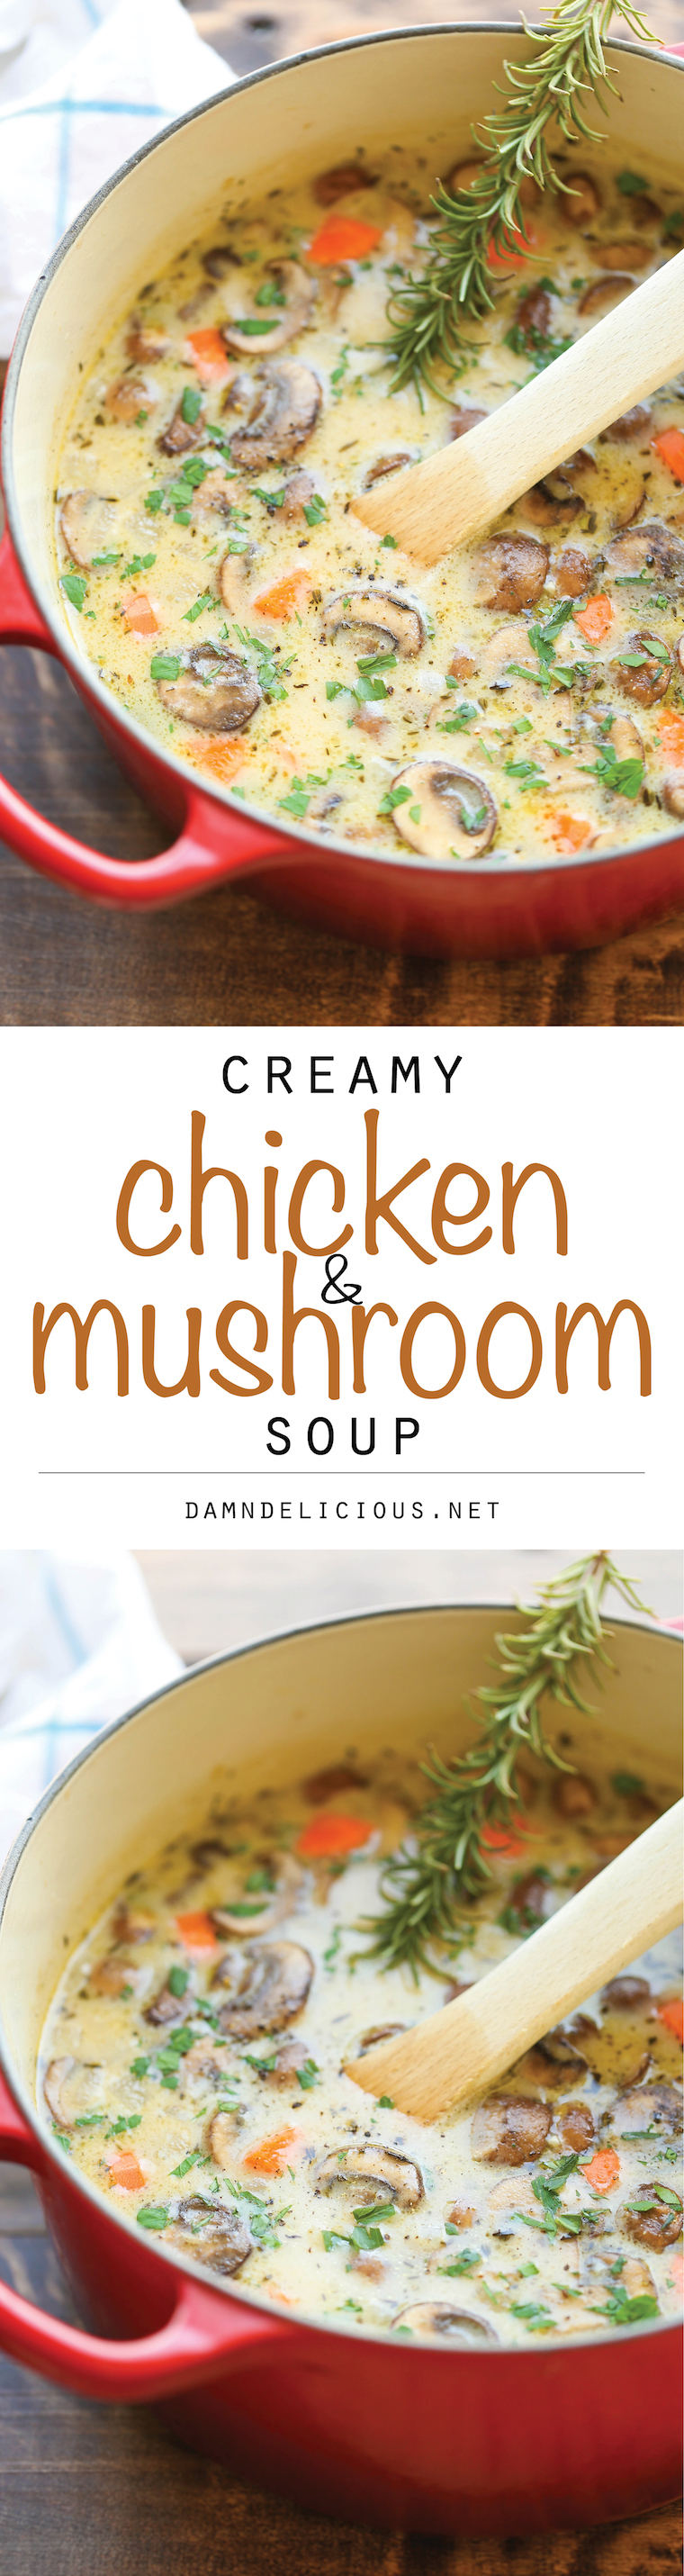 Creamy Chicken Mushroom Soup - So cozy, so comforting and just so creamy. Best of all, this is made in 30 min from start to finish – so quick and easy!